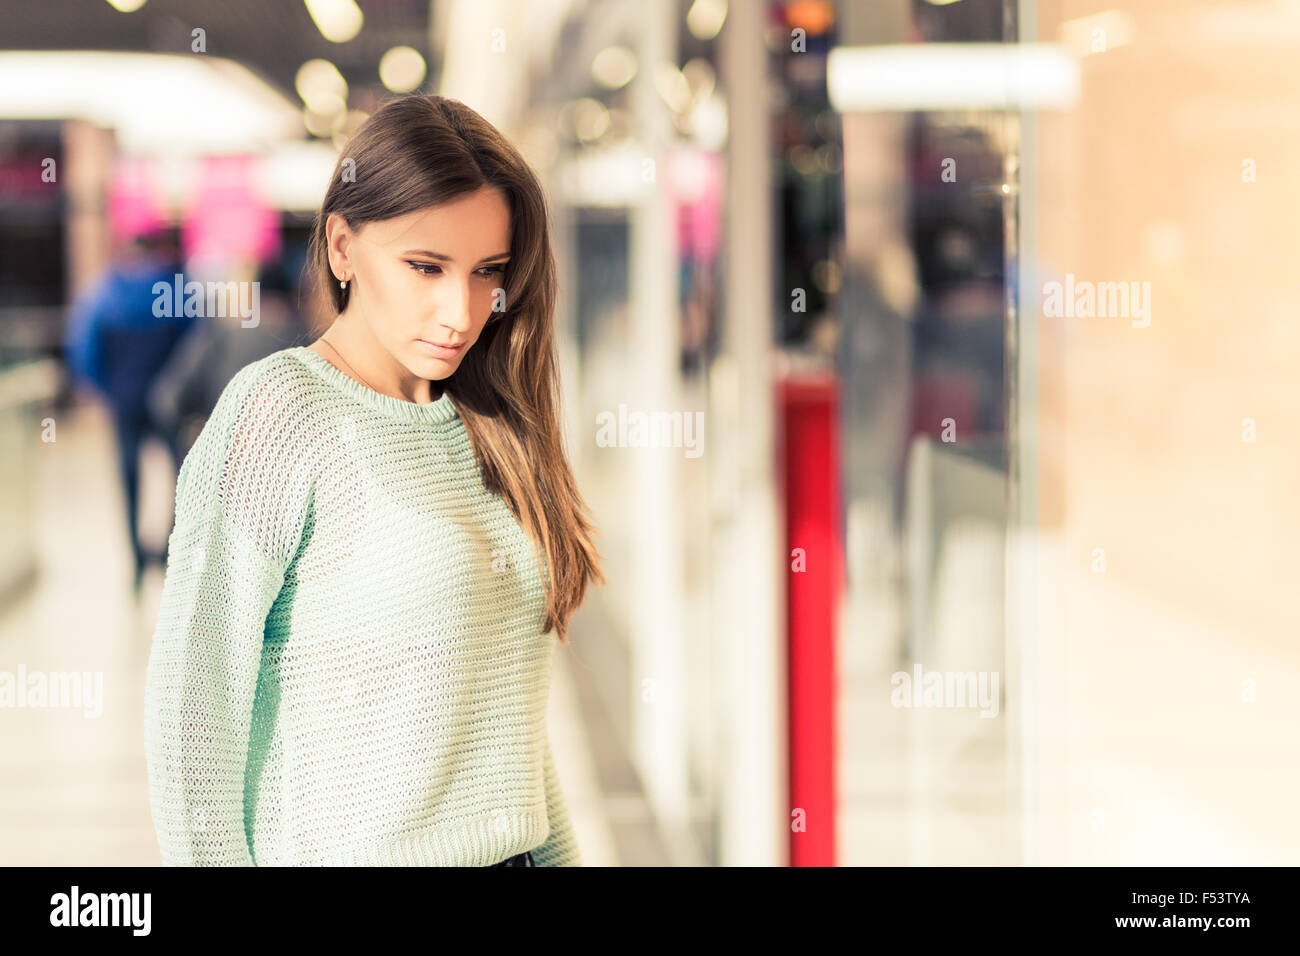 Young caucasian woman with dark brown hair looking through window in the mall. Window shopping background. Warm - Stock Image